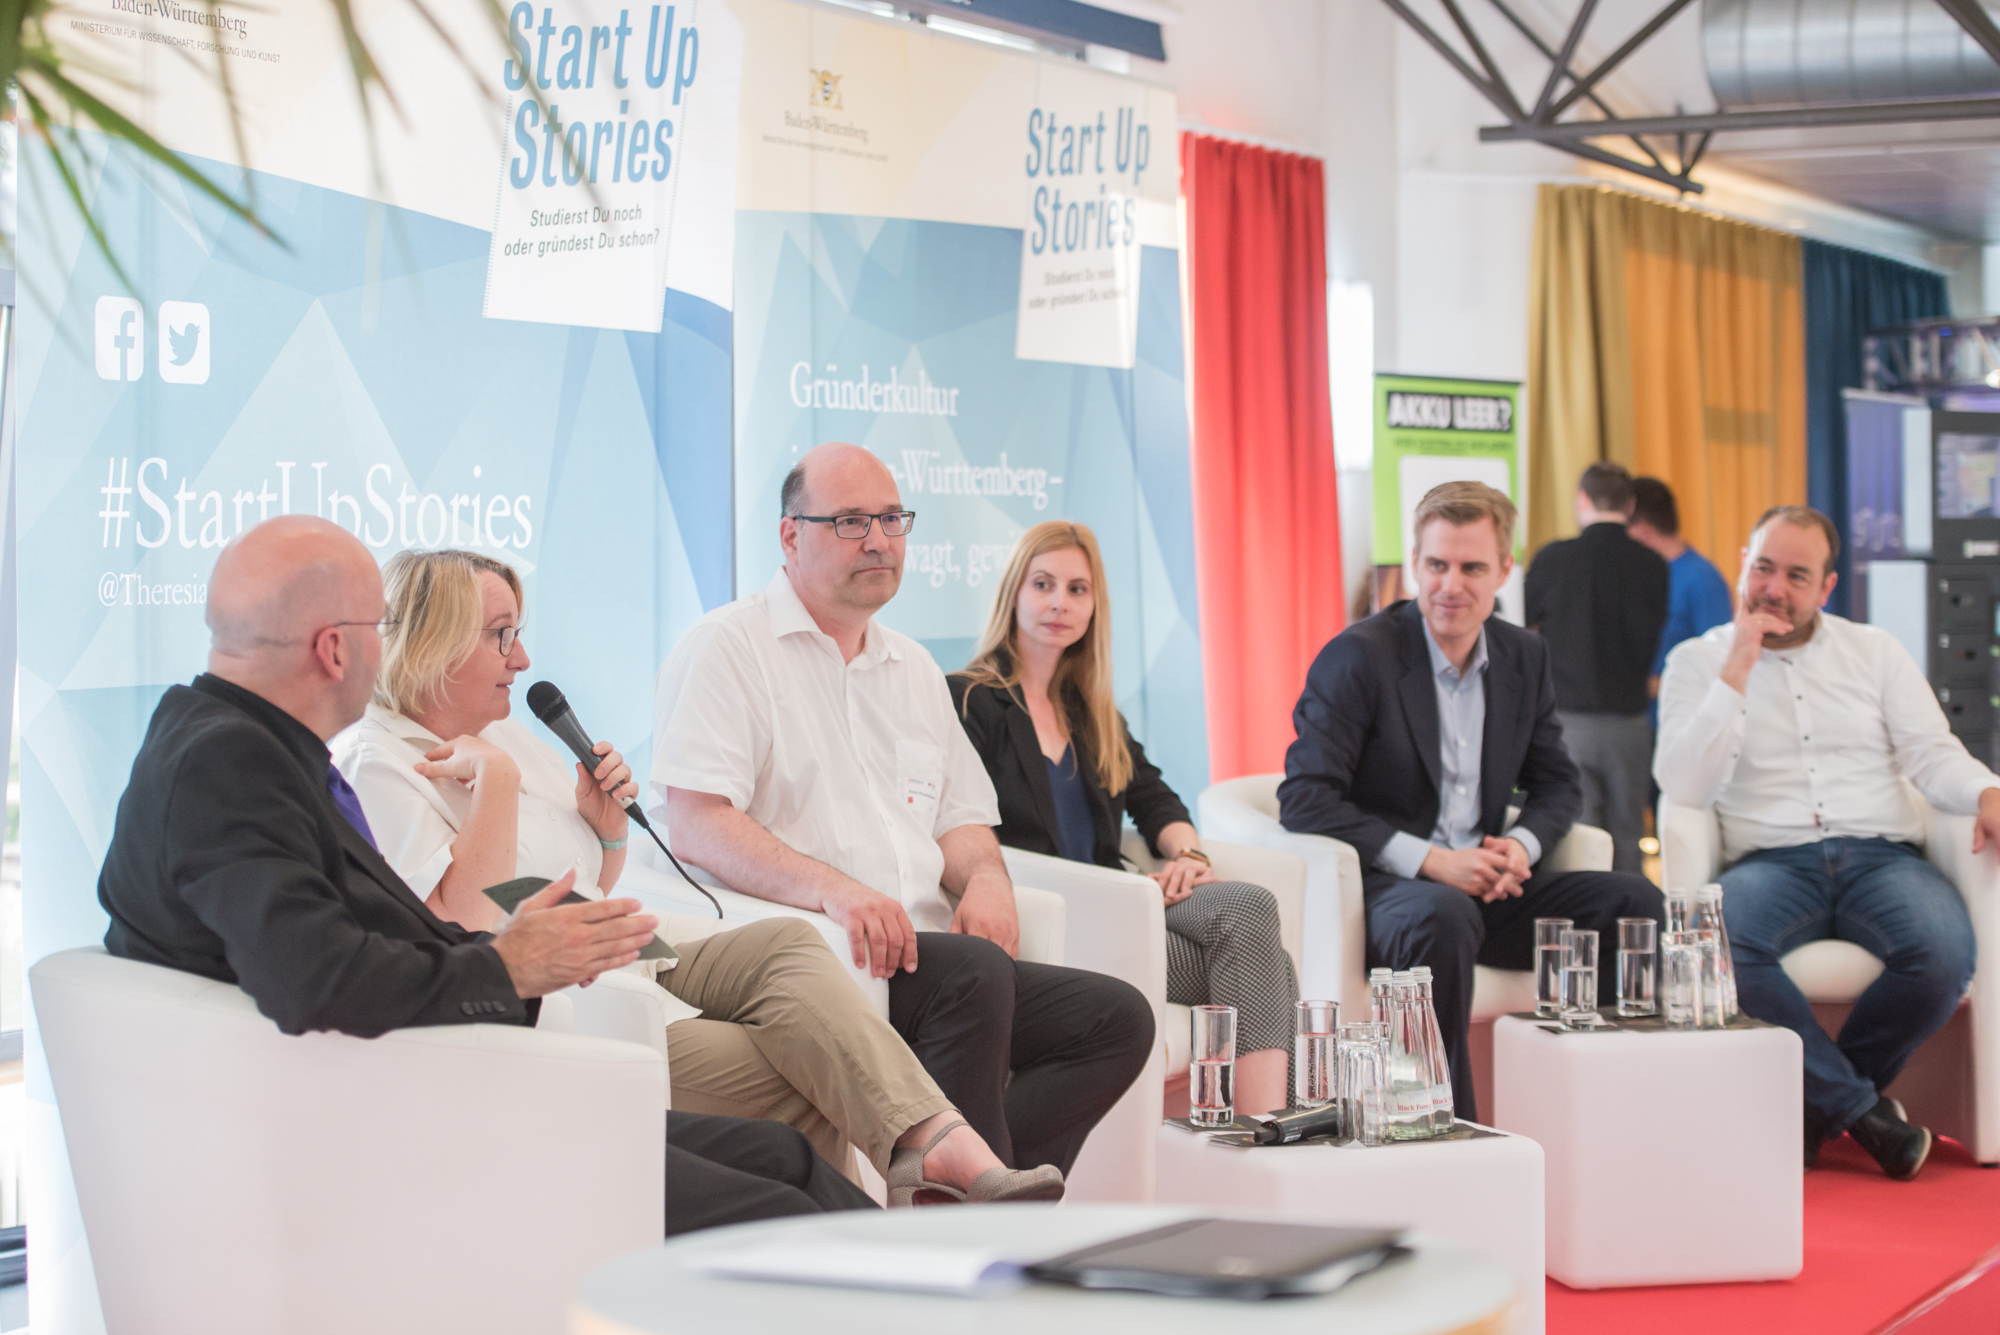 podiumsdiskussion beim gruendergeistevent